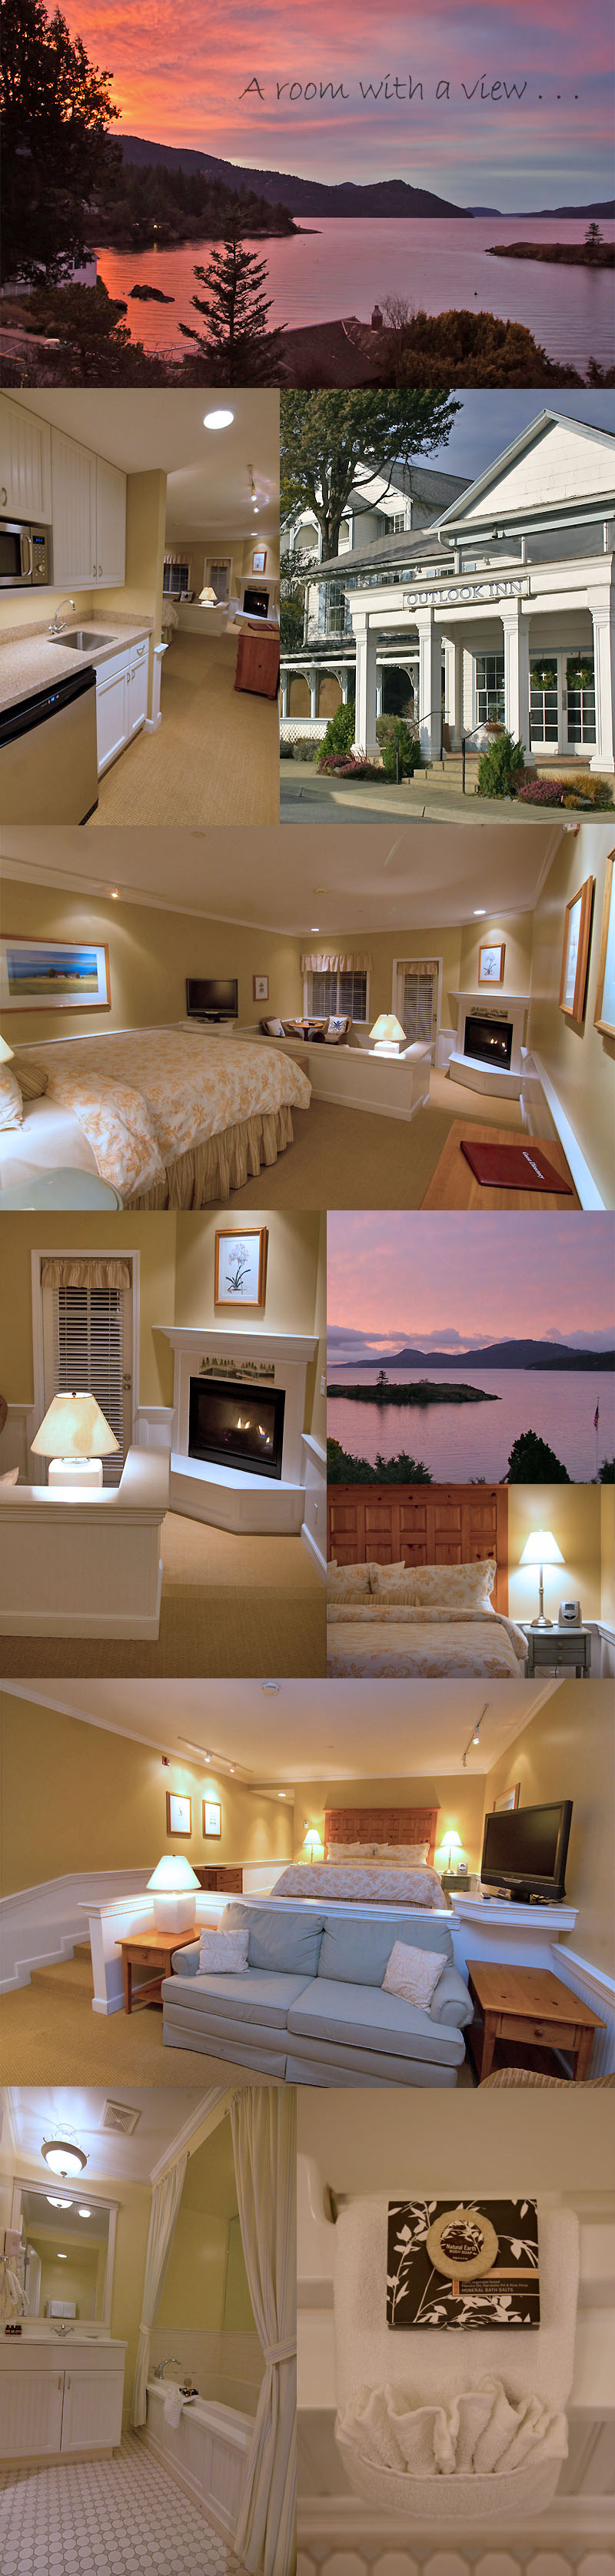 Our New Years Eve Room at The Outlook Inn on Orcas Island